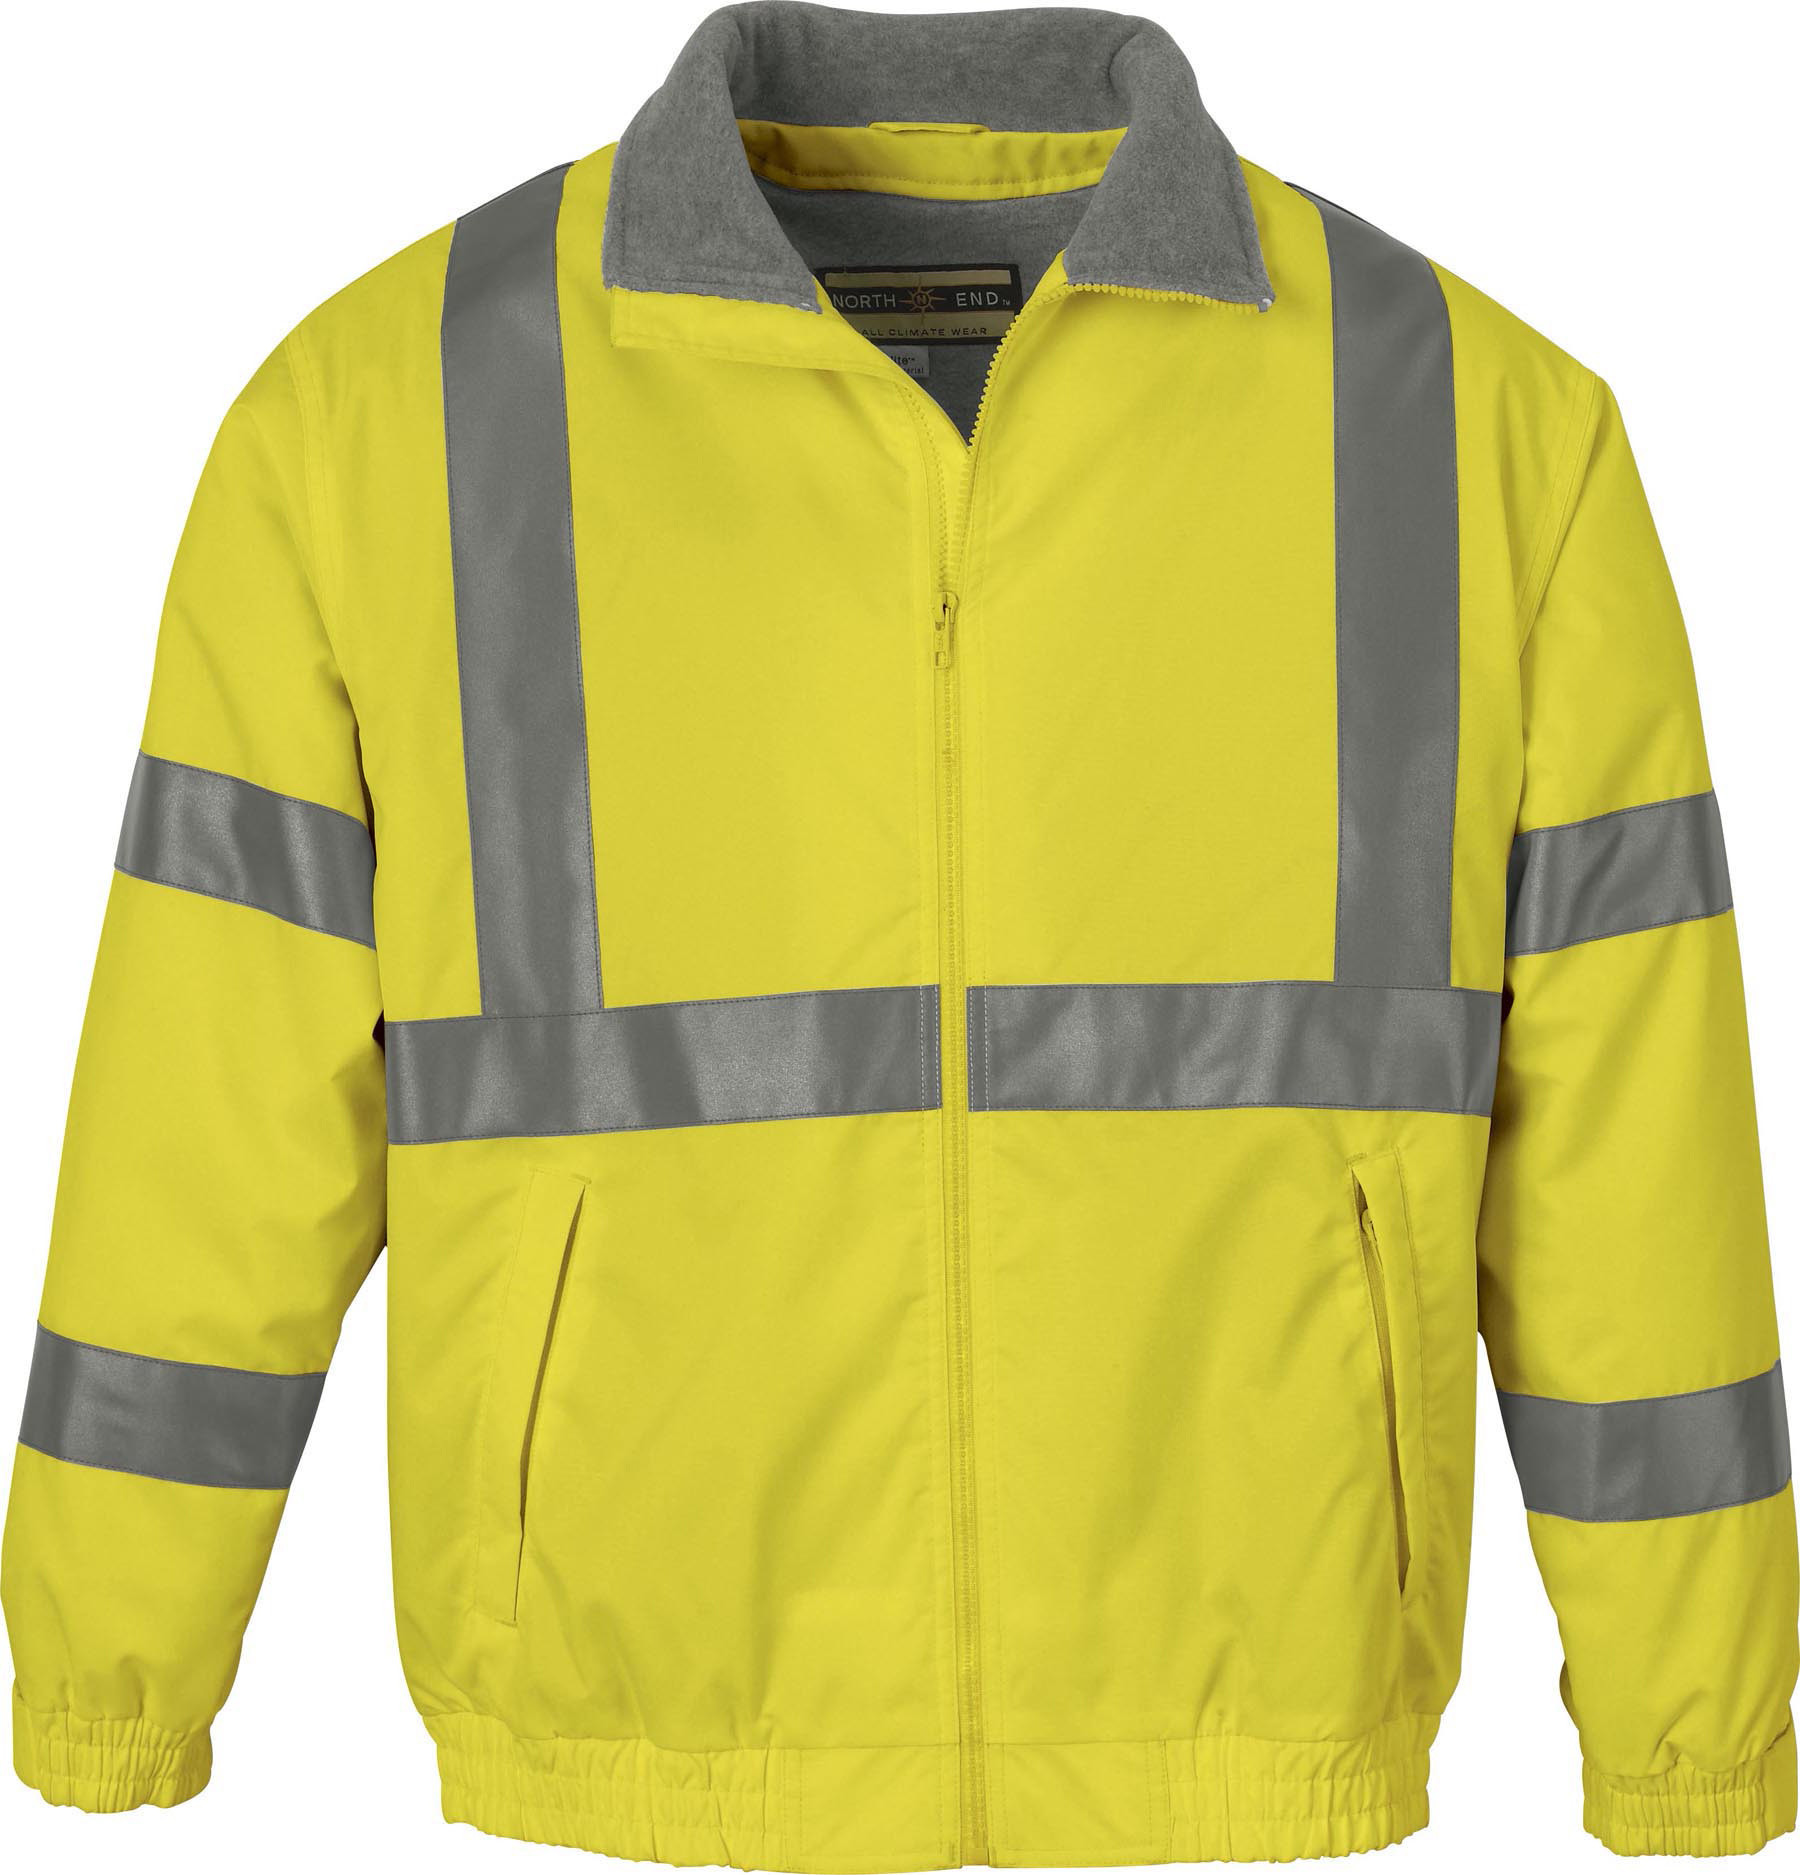 Ash City UTK 2 Warm.Logik 88702 - Men's Insulated Safety ...